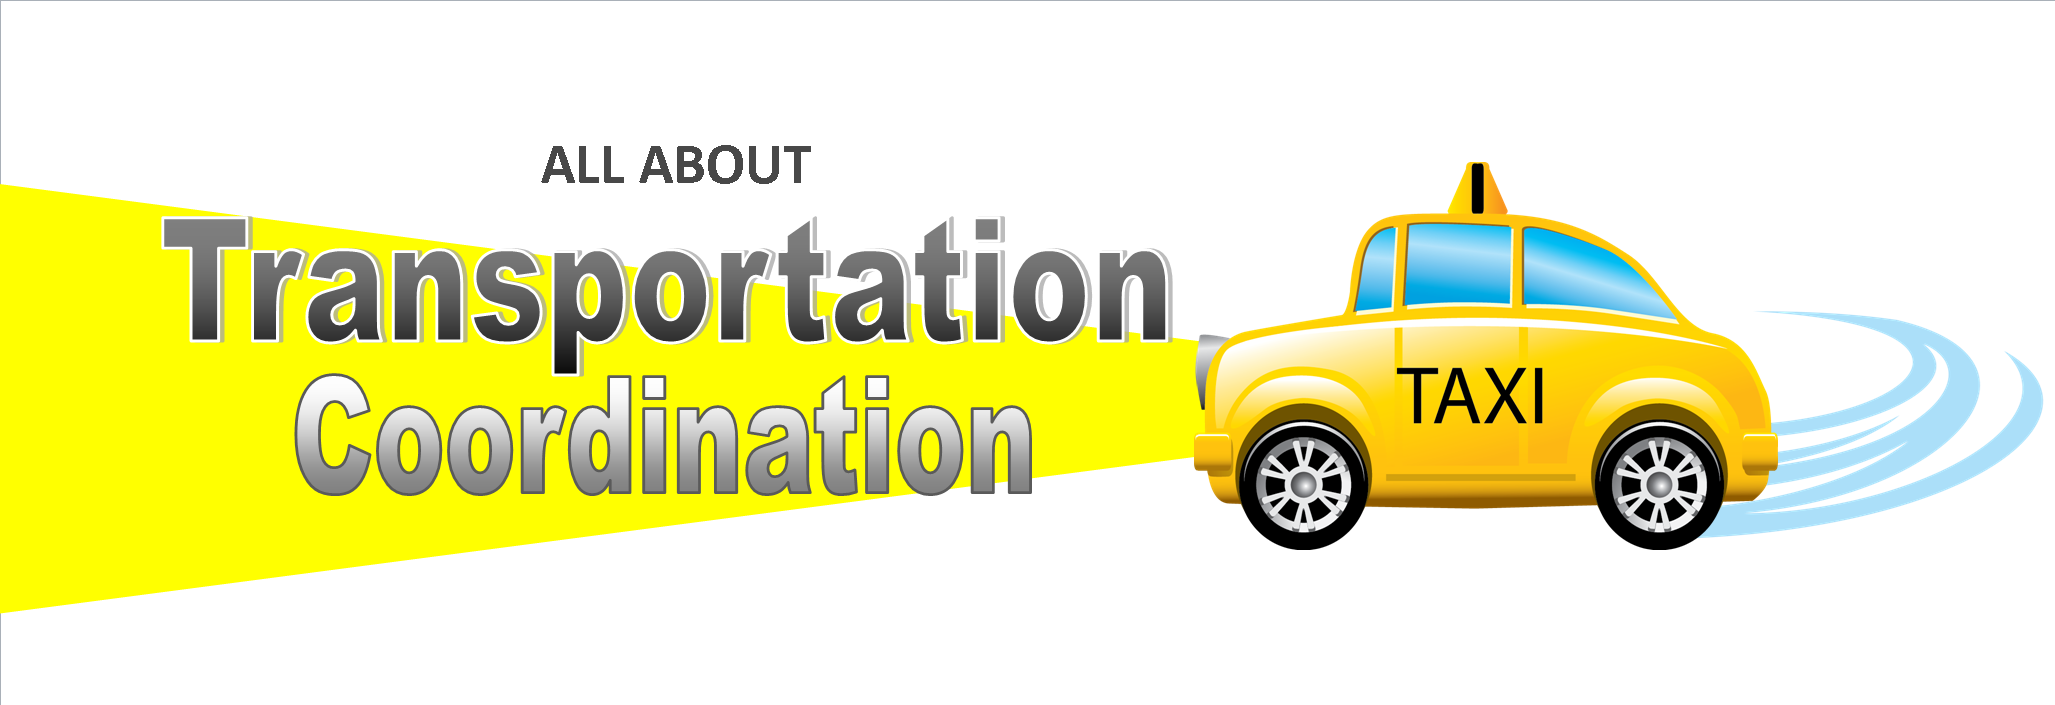 Learn about our Transportation Services!